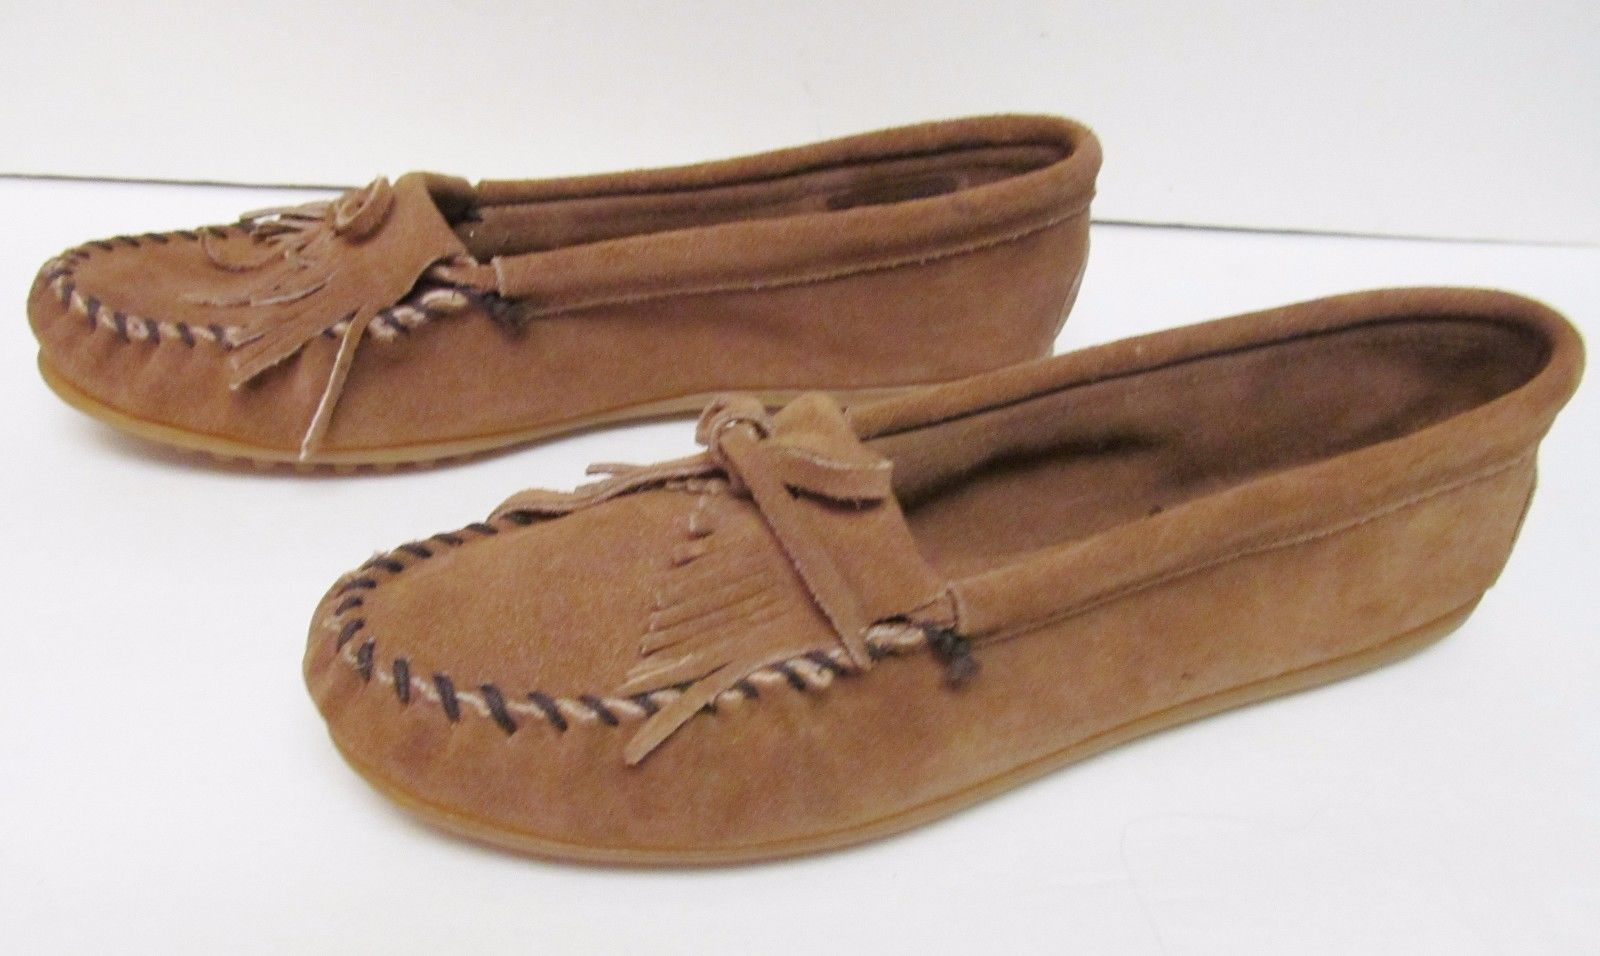 8bece719dc6976 MINNETONKA Women s Moccasins Leather Slip On Loafers Shoes 407 T Brown Tan  11 -  29.95